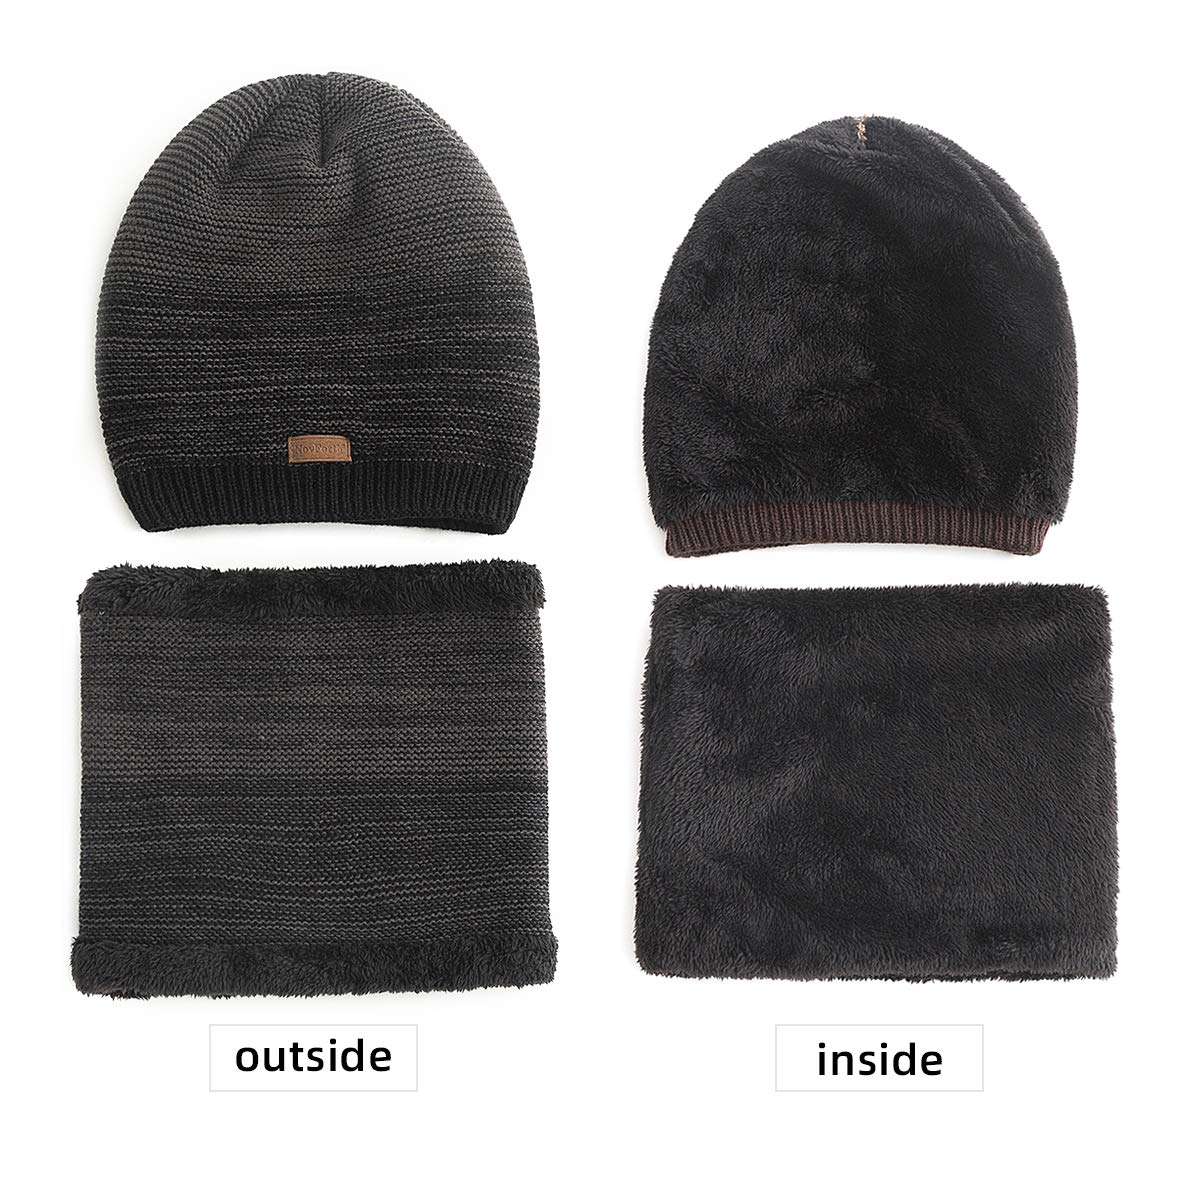 NovFort 2-Pieces Mens Beanie Hat Scarf Set Winter Warm Knit Slouchy Thick Fleece Lined Skull Cap for Men Unisex